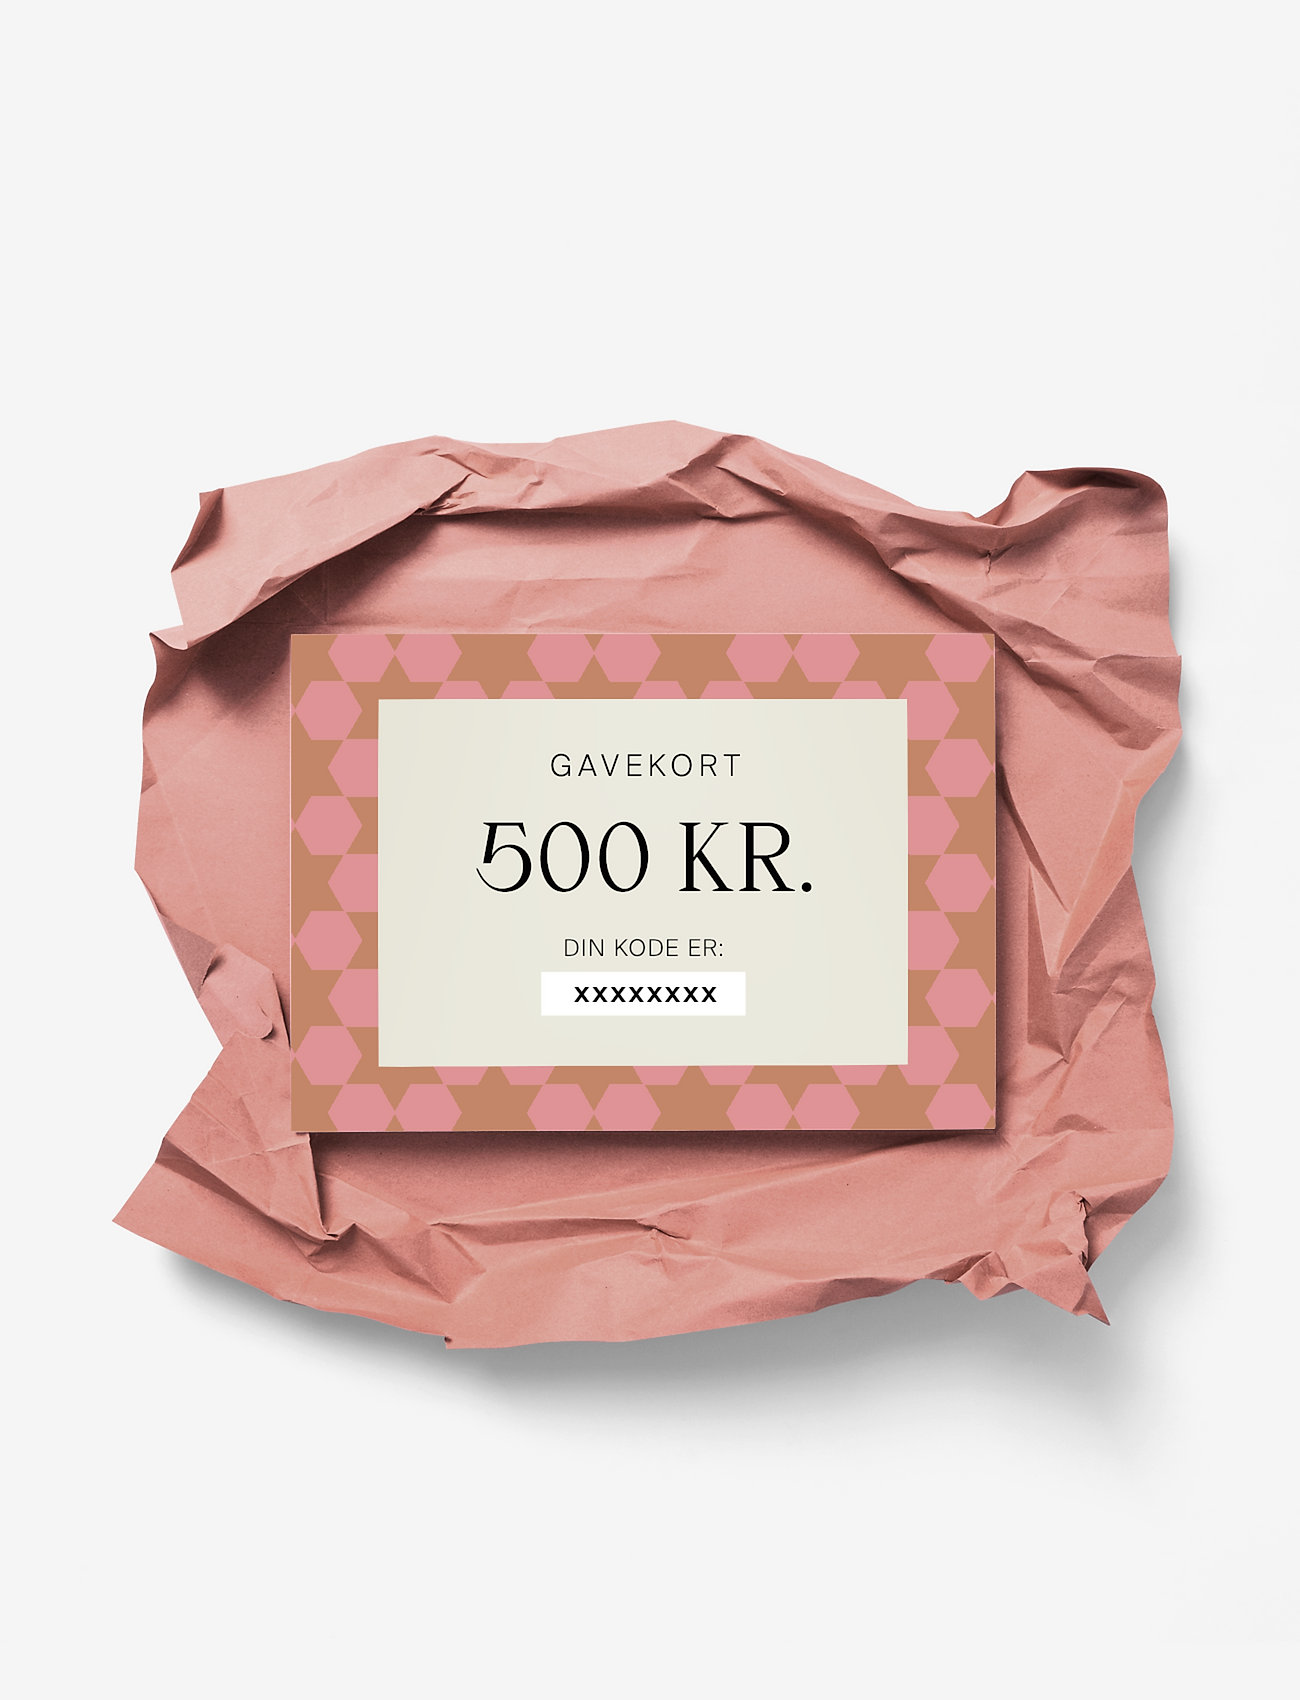 Boozt Gift - Gift card - gift cards - dkk 500 - 0